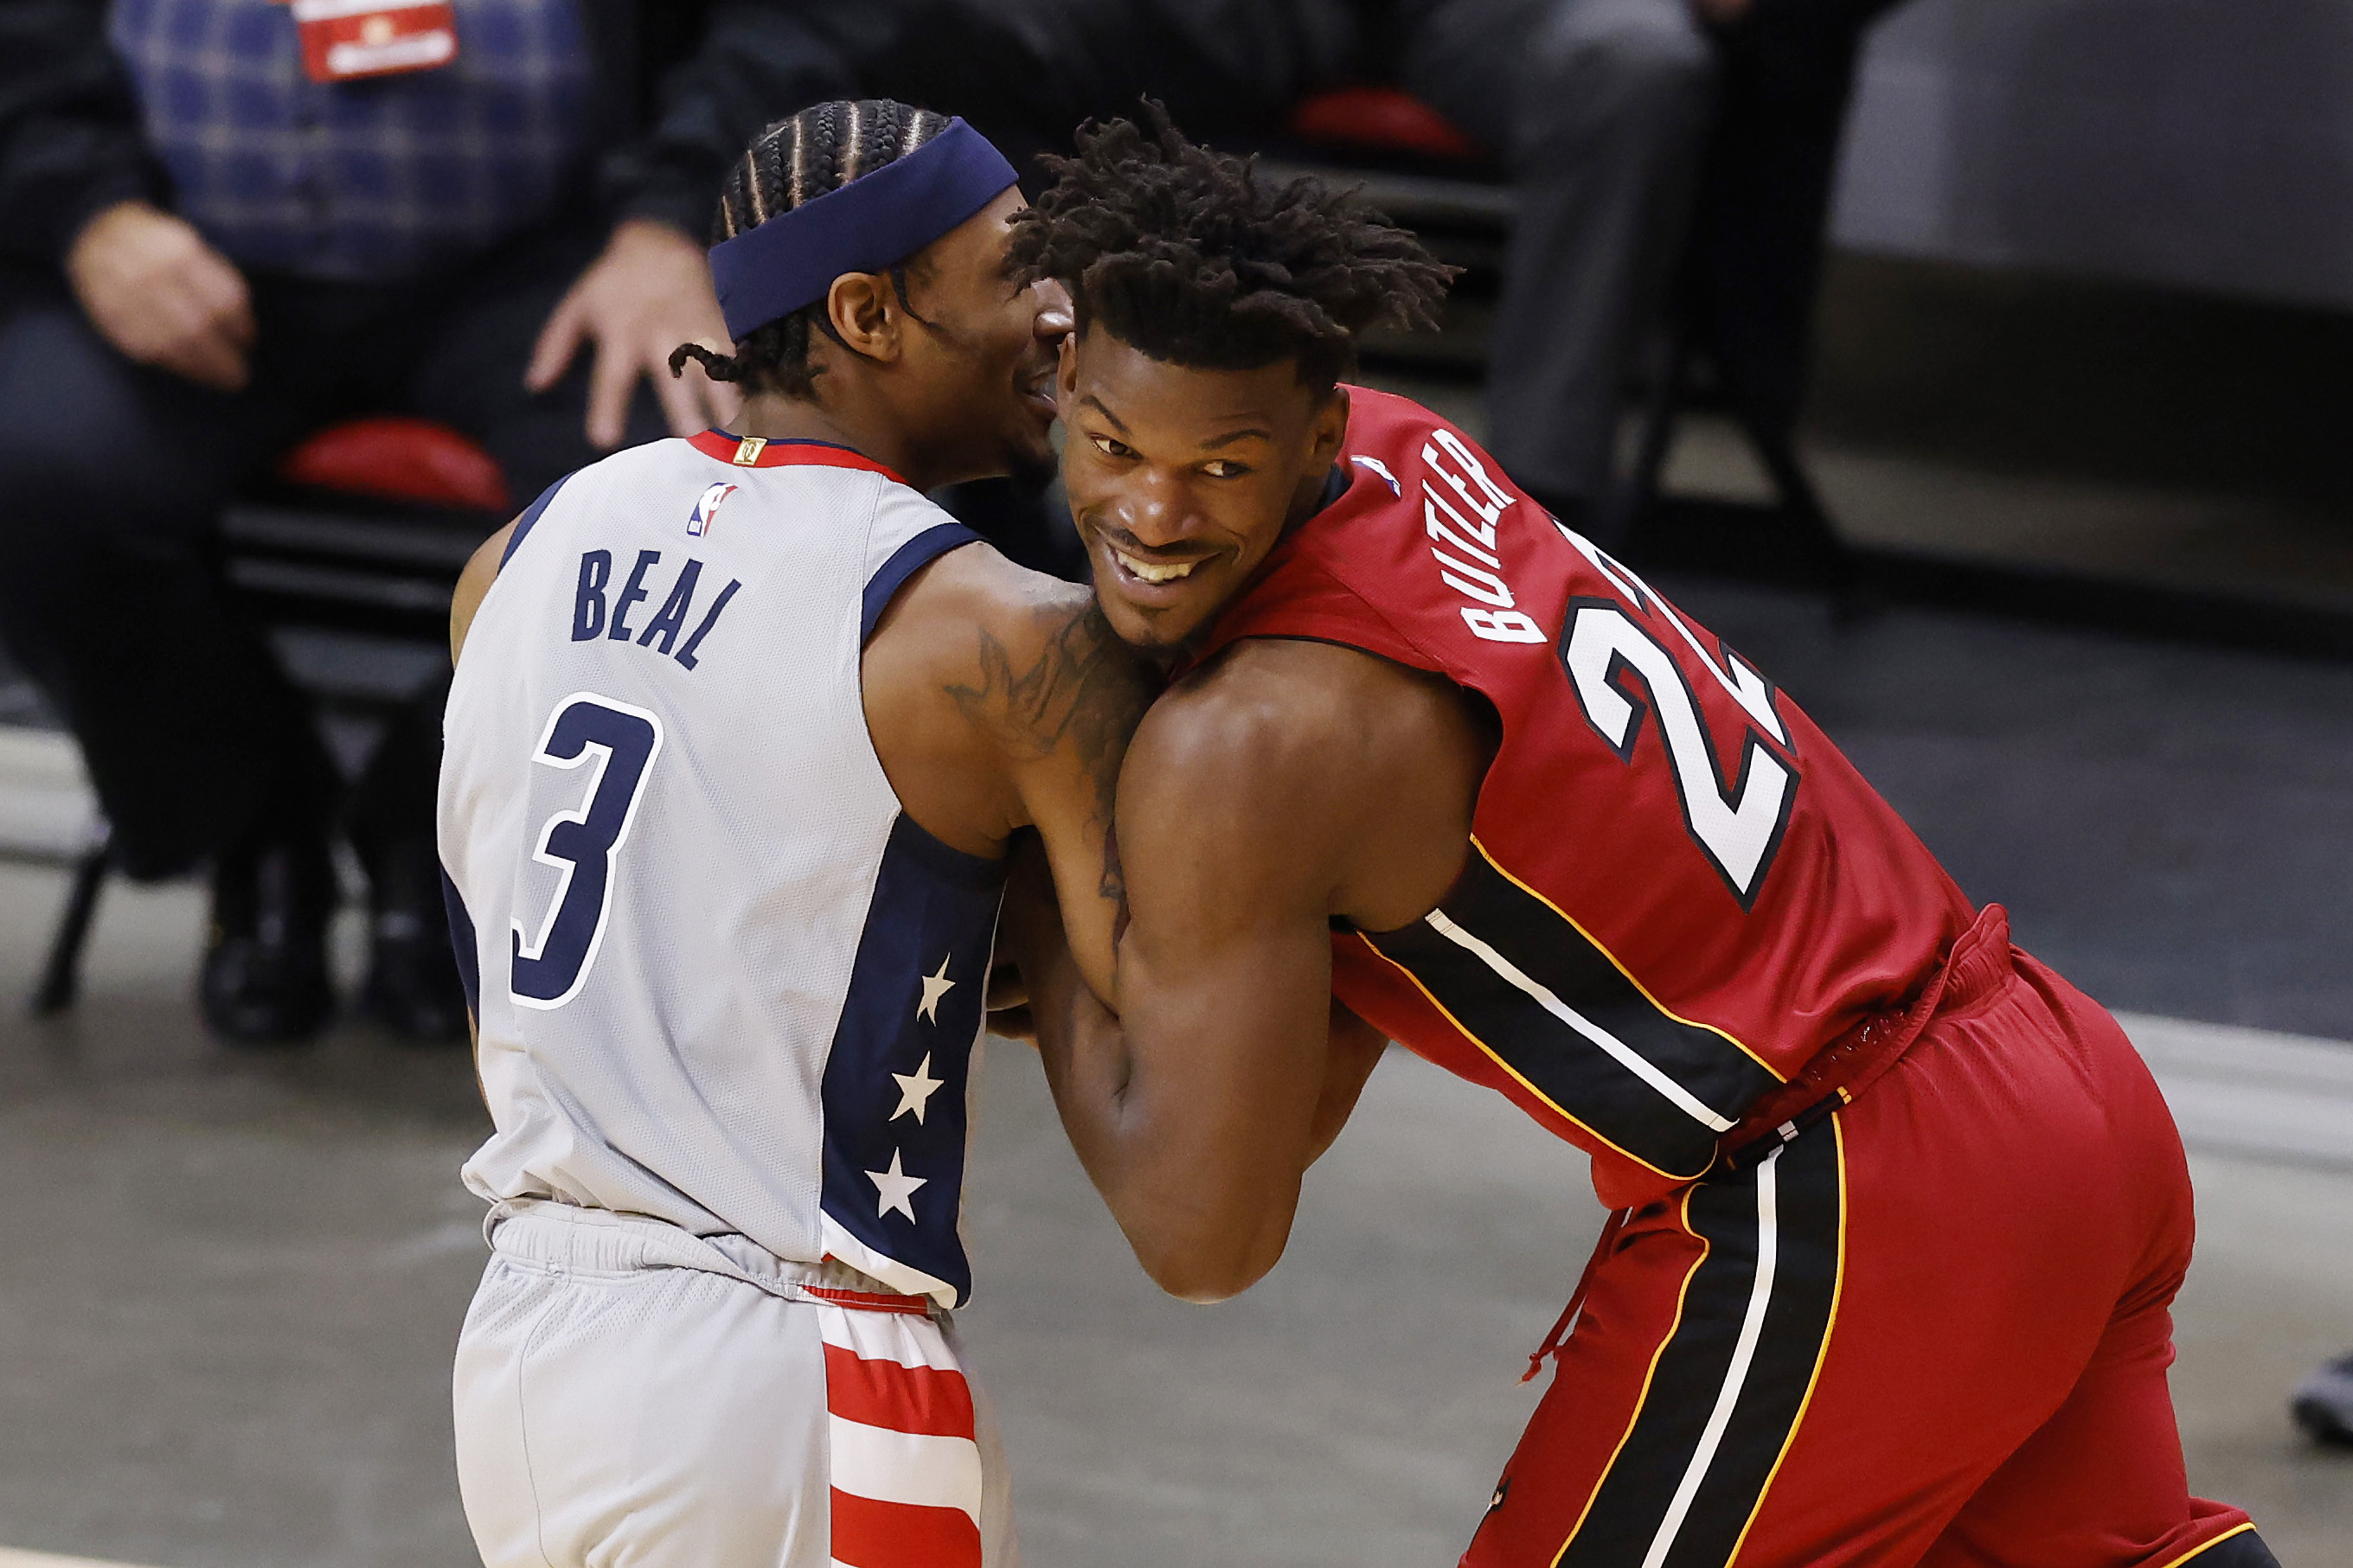 Bradley Beal of the Washington Wizards and Jimmy Butler of the Miami Heat battle for the ball